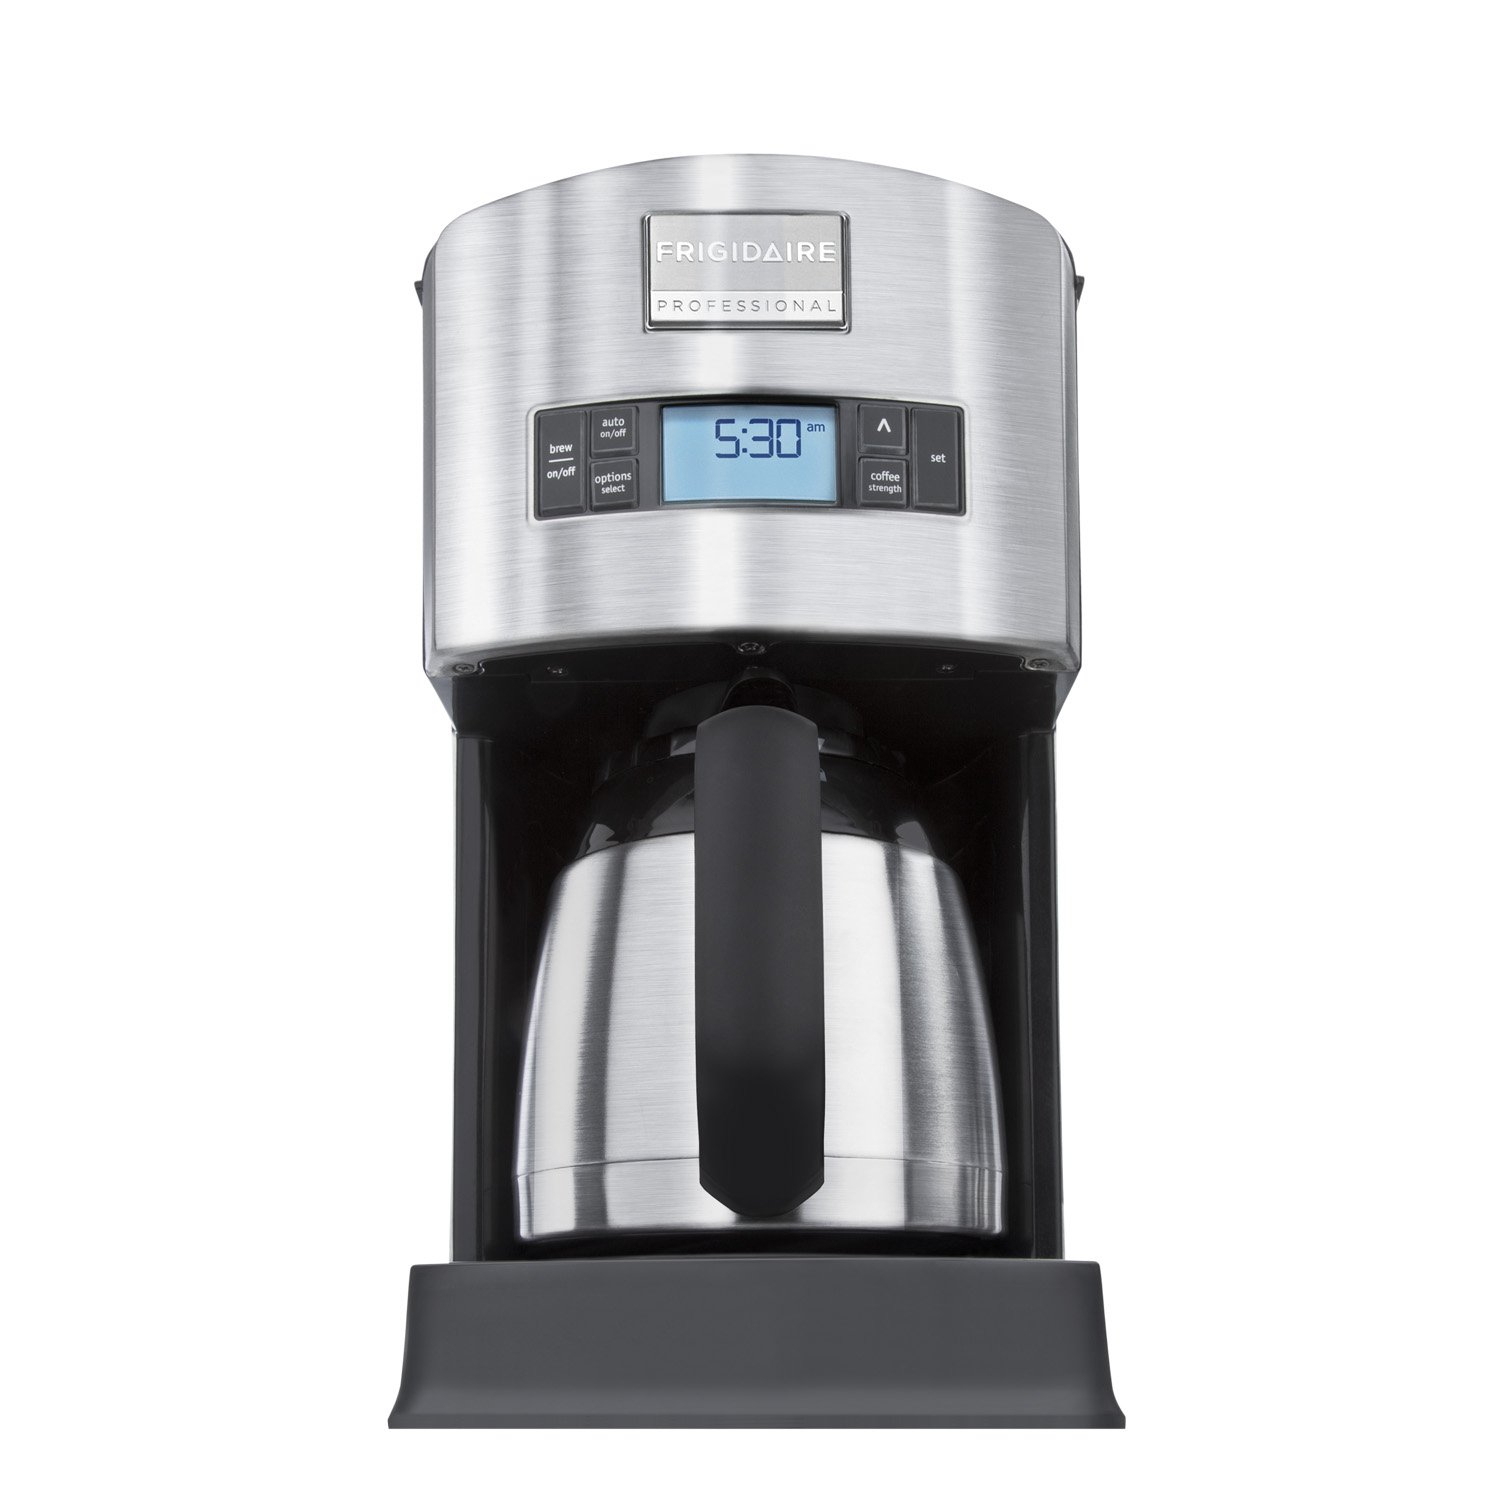 Frigidaire Professional Stainless 10-Cup Thermal Carafe Coffee Maker